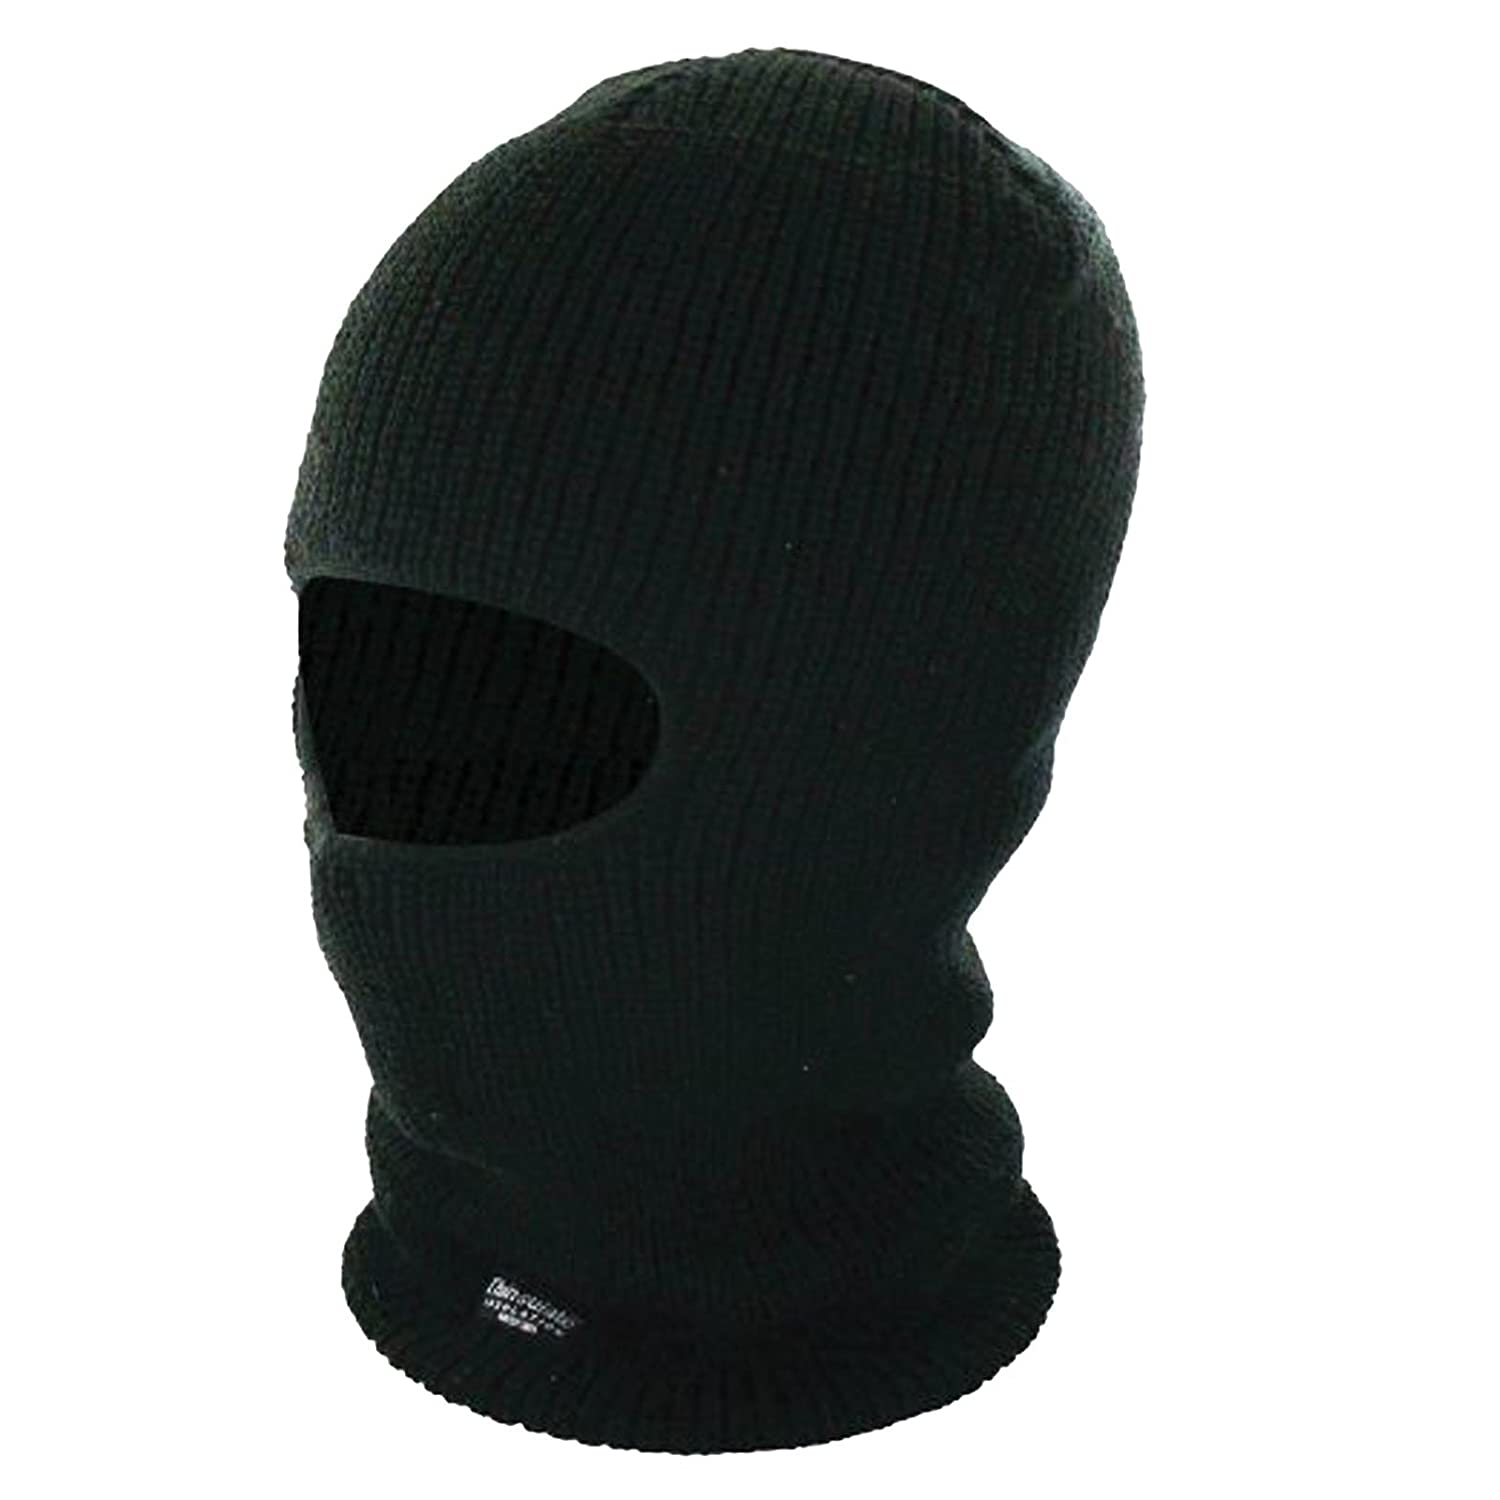 3aec9caf0d3 THINSULATE BALACLAVA MENS BLACK THERMAL FLEECE LINED OPEN FACE WINTER HAT  SNOW